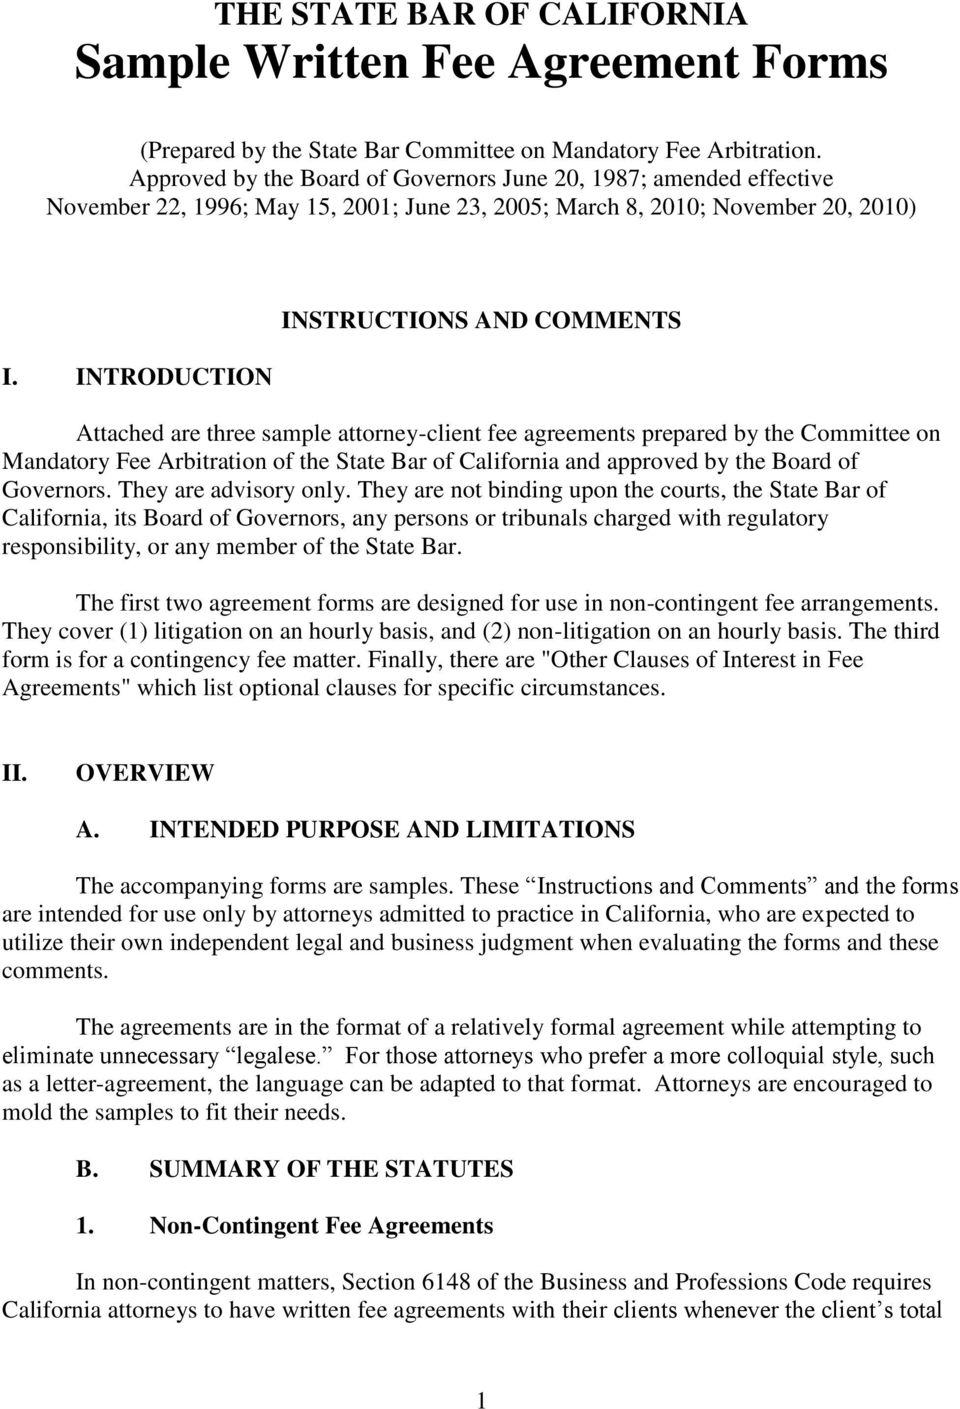 California State Bar The State Bar Of California Sample Written Fee Agreement Forms Pdf